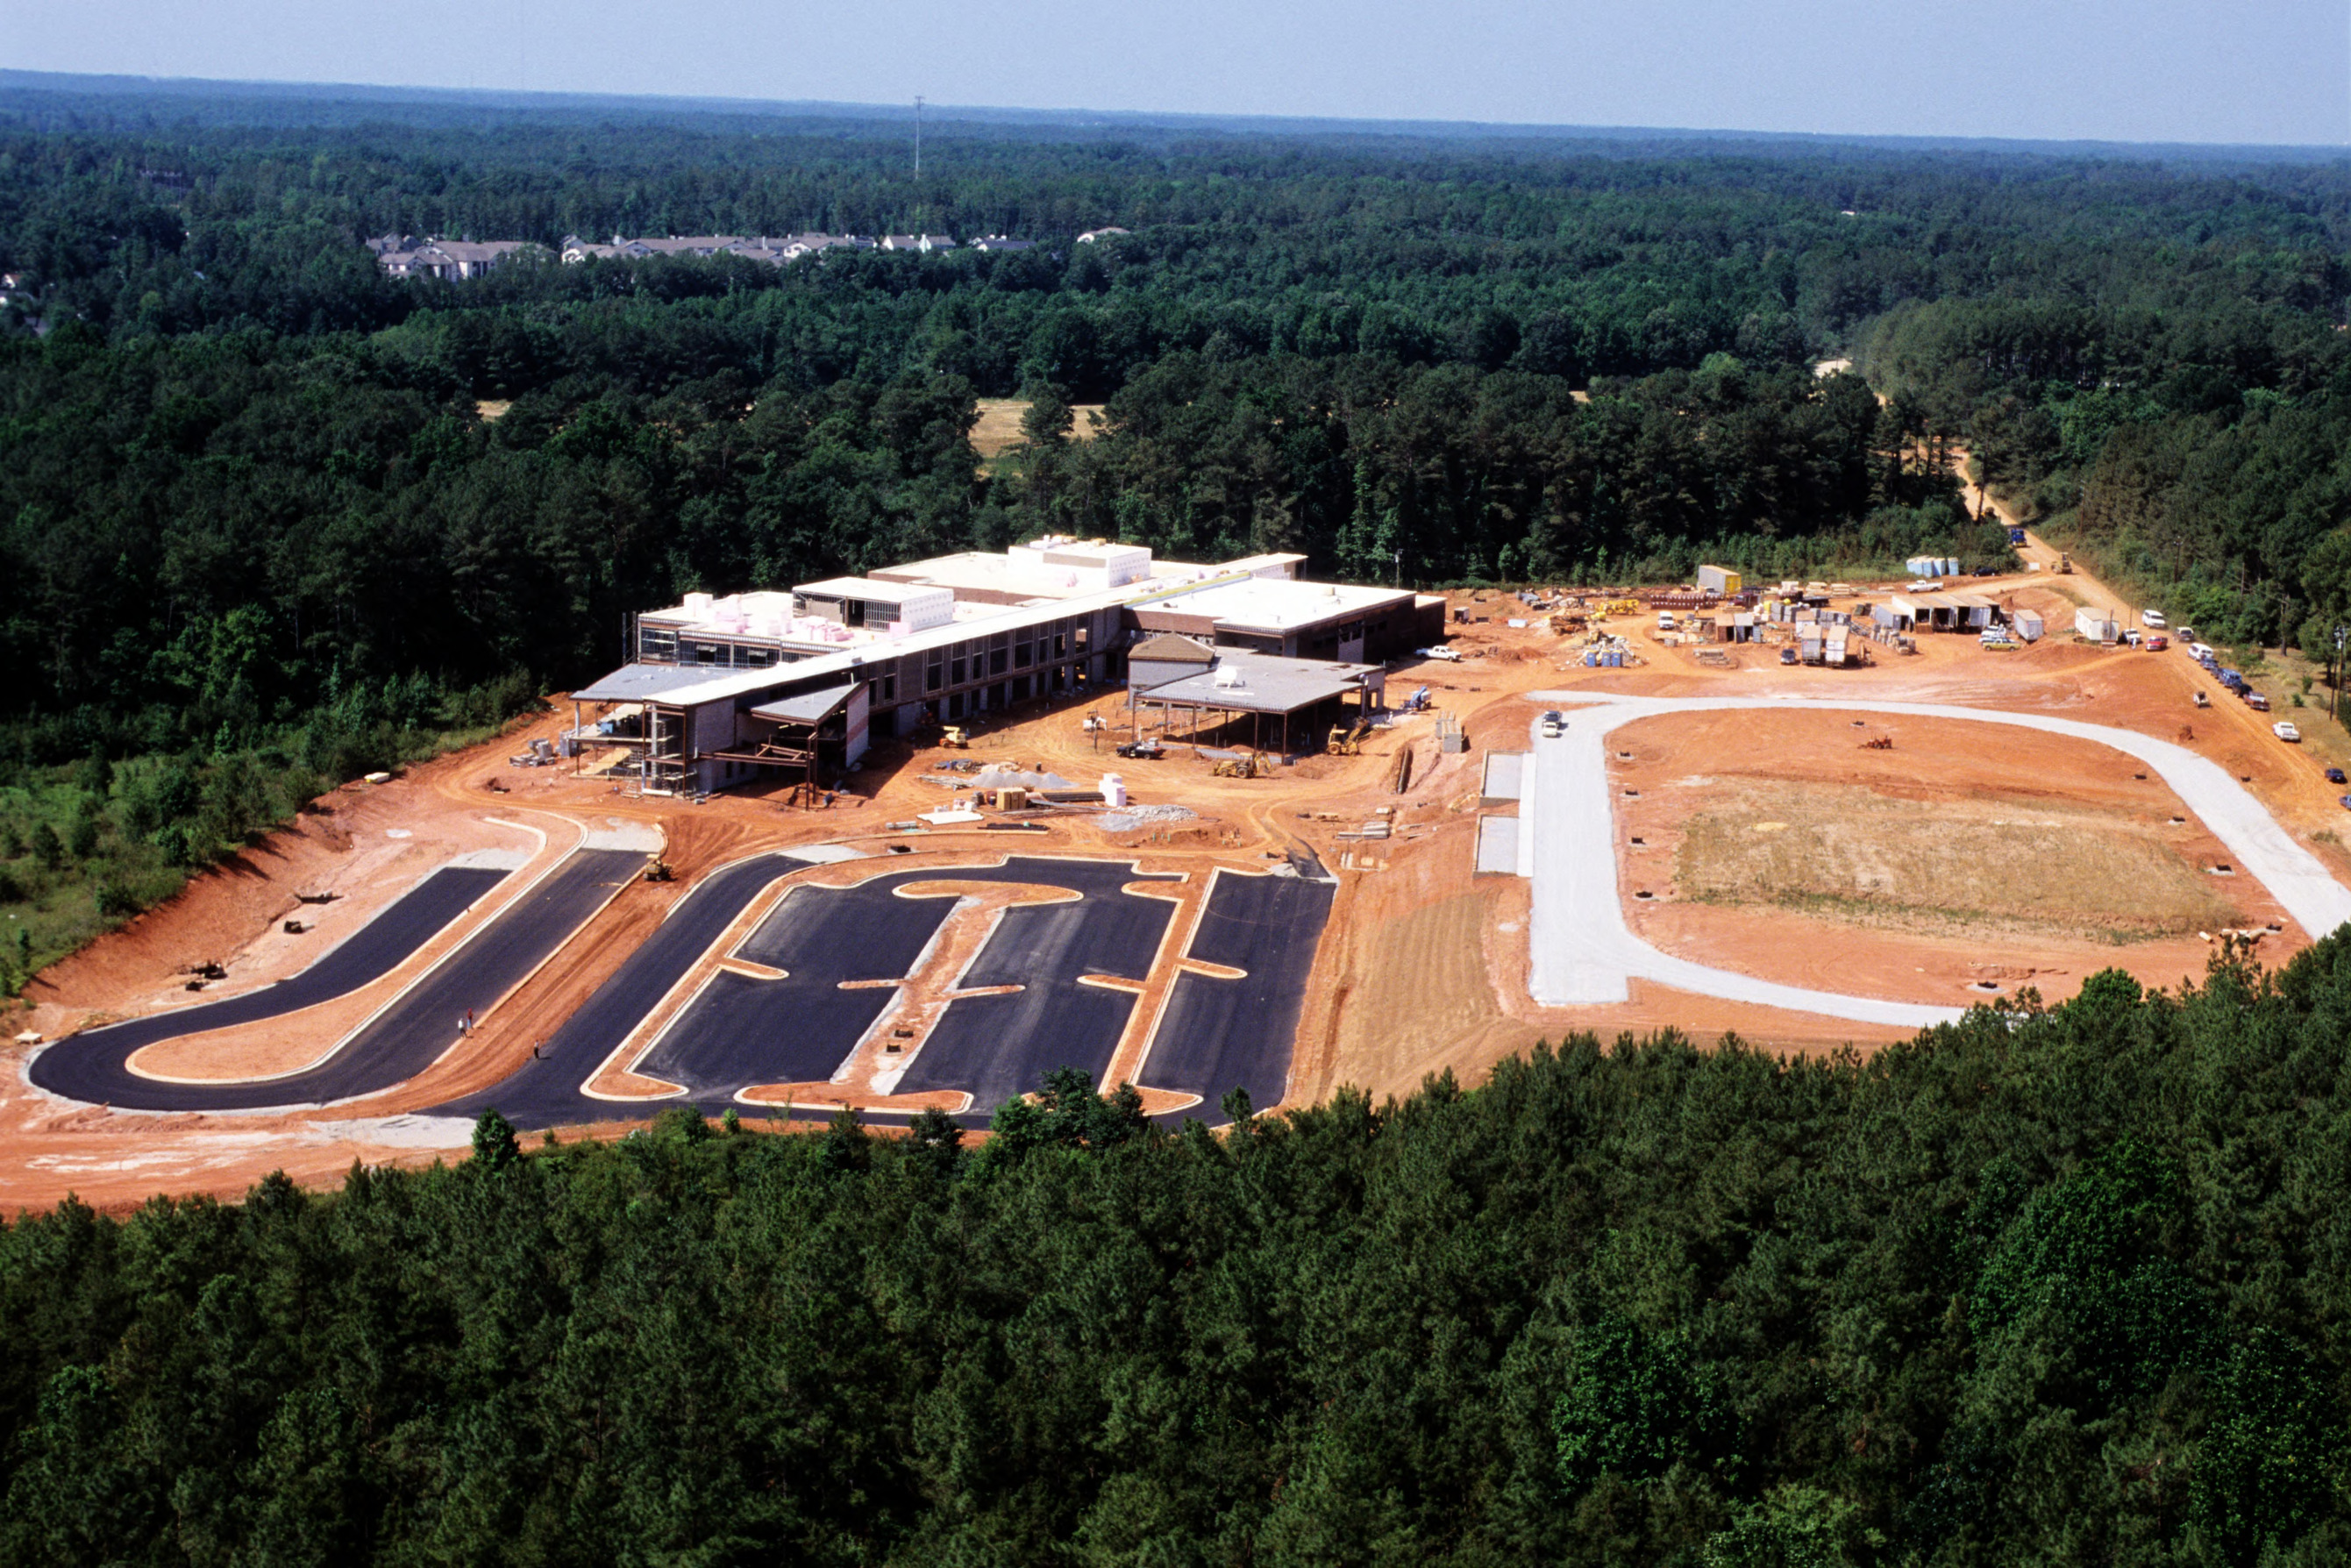 Aerial view of Middle School site construction, Centennial Campus, North Carolina State